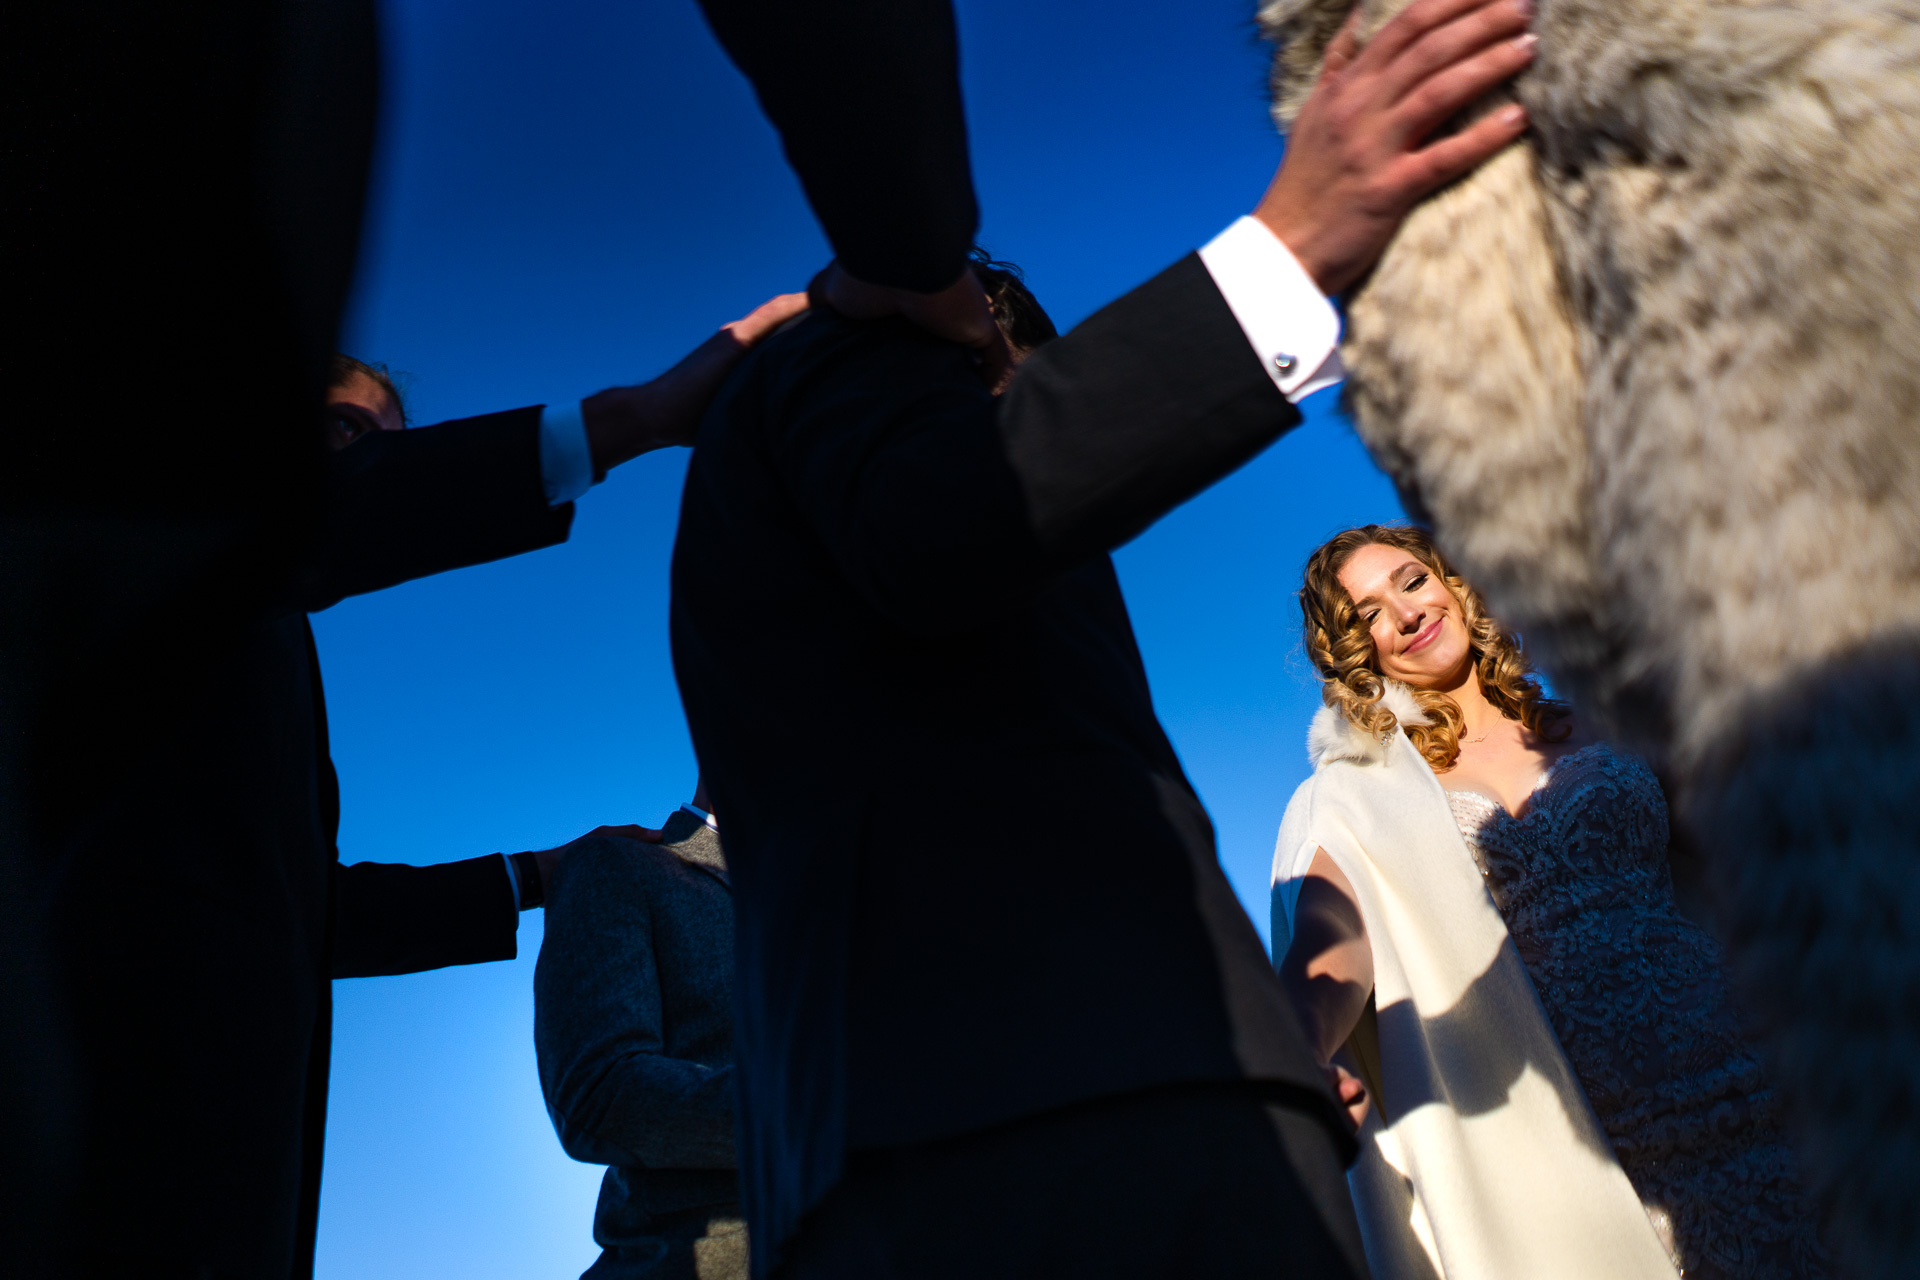 Williams Creek Reservoir, Pagosa Springs, Colorado Wedding Pic | surrounded by close friends and family during a prayer